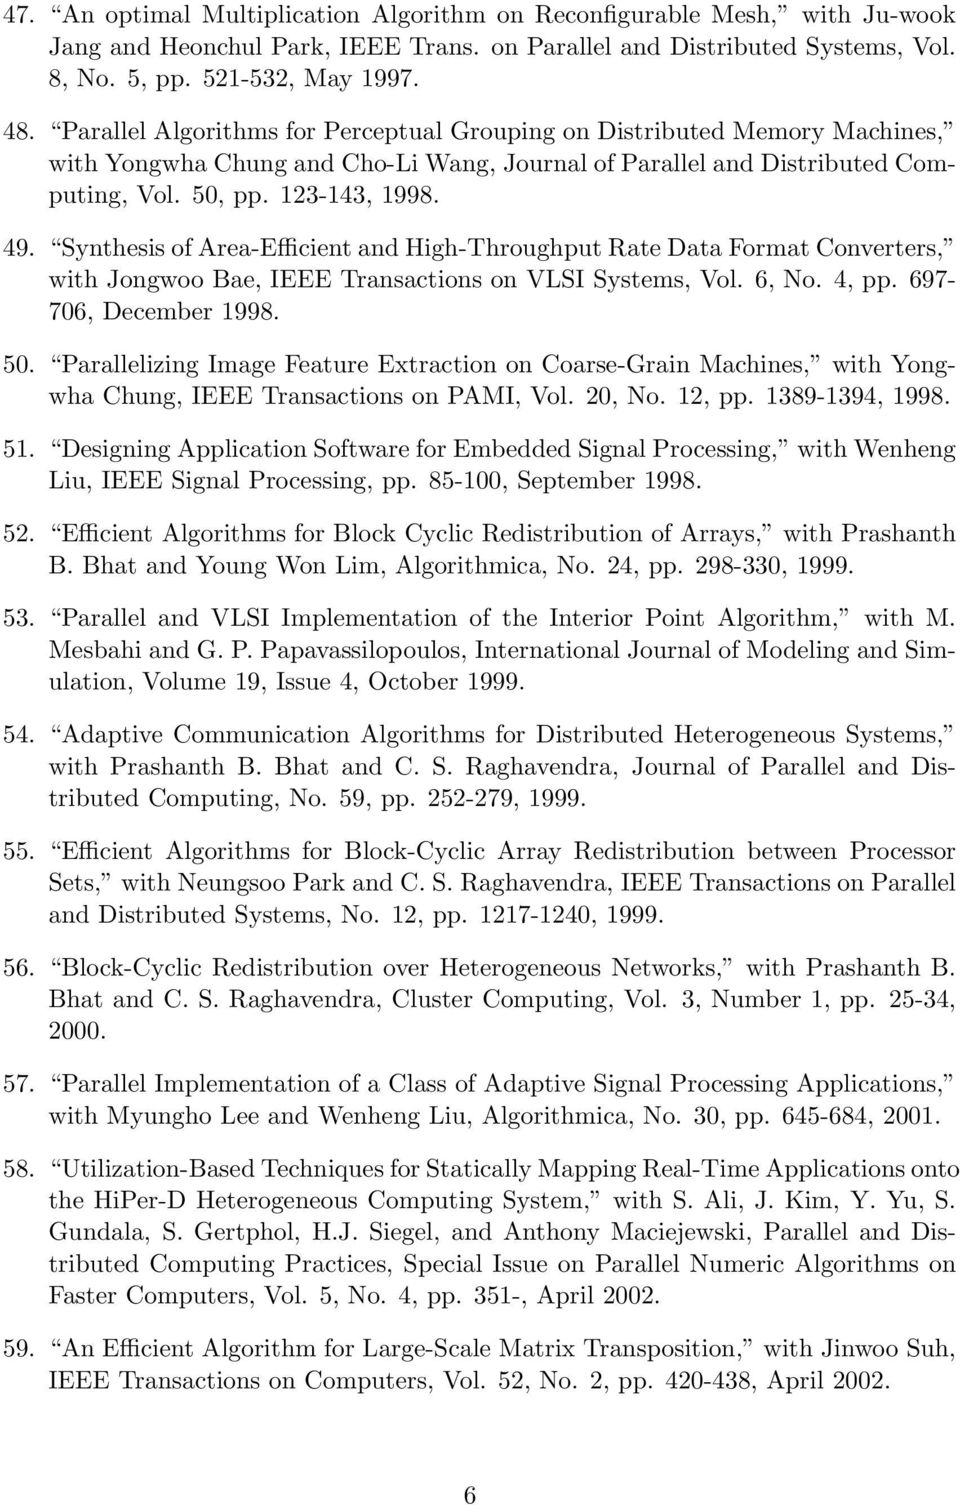 Synthesis of Area-Efficient and High-Throughput Rate Data Format Converters, with Jongwoo Bae, IEEE Transactions on VLSI Systems, Vol. 6, No. 4, pp. 697-706, December 1998. 50.